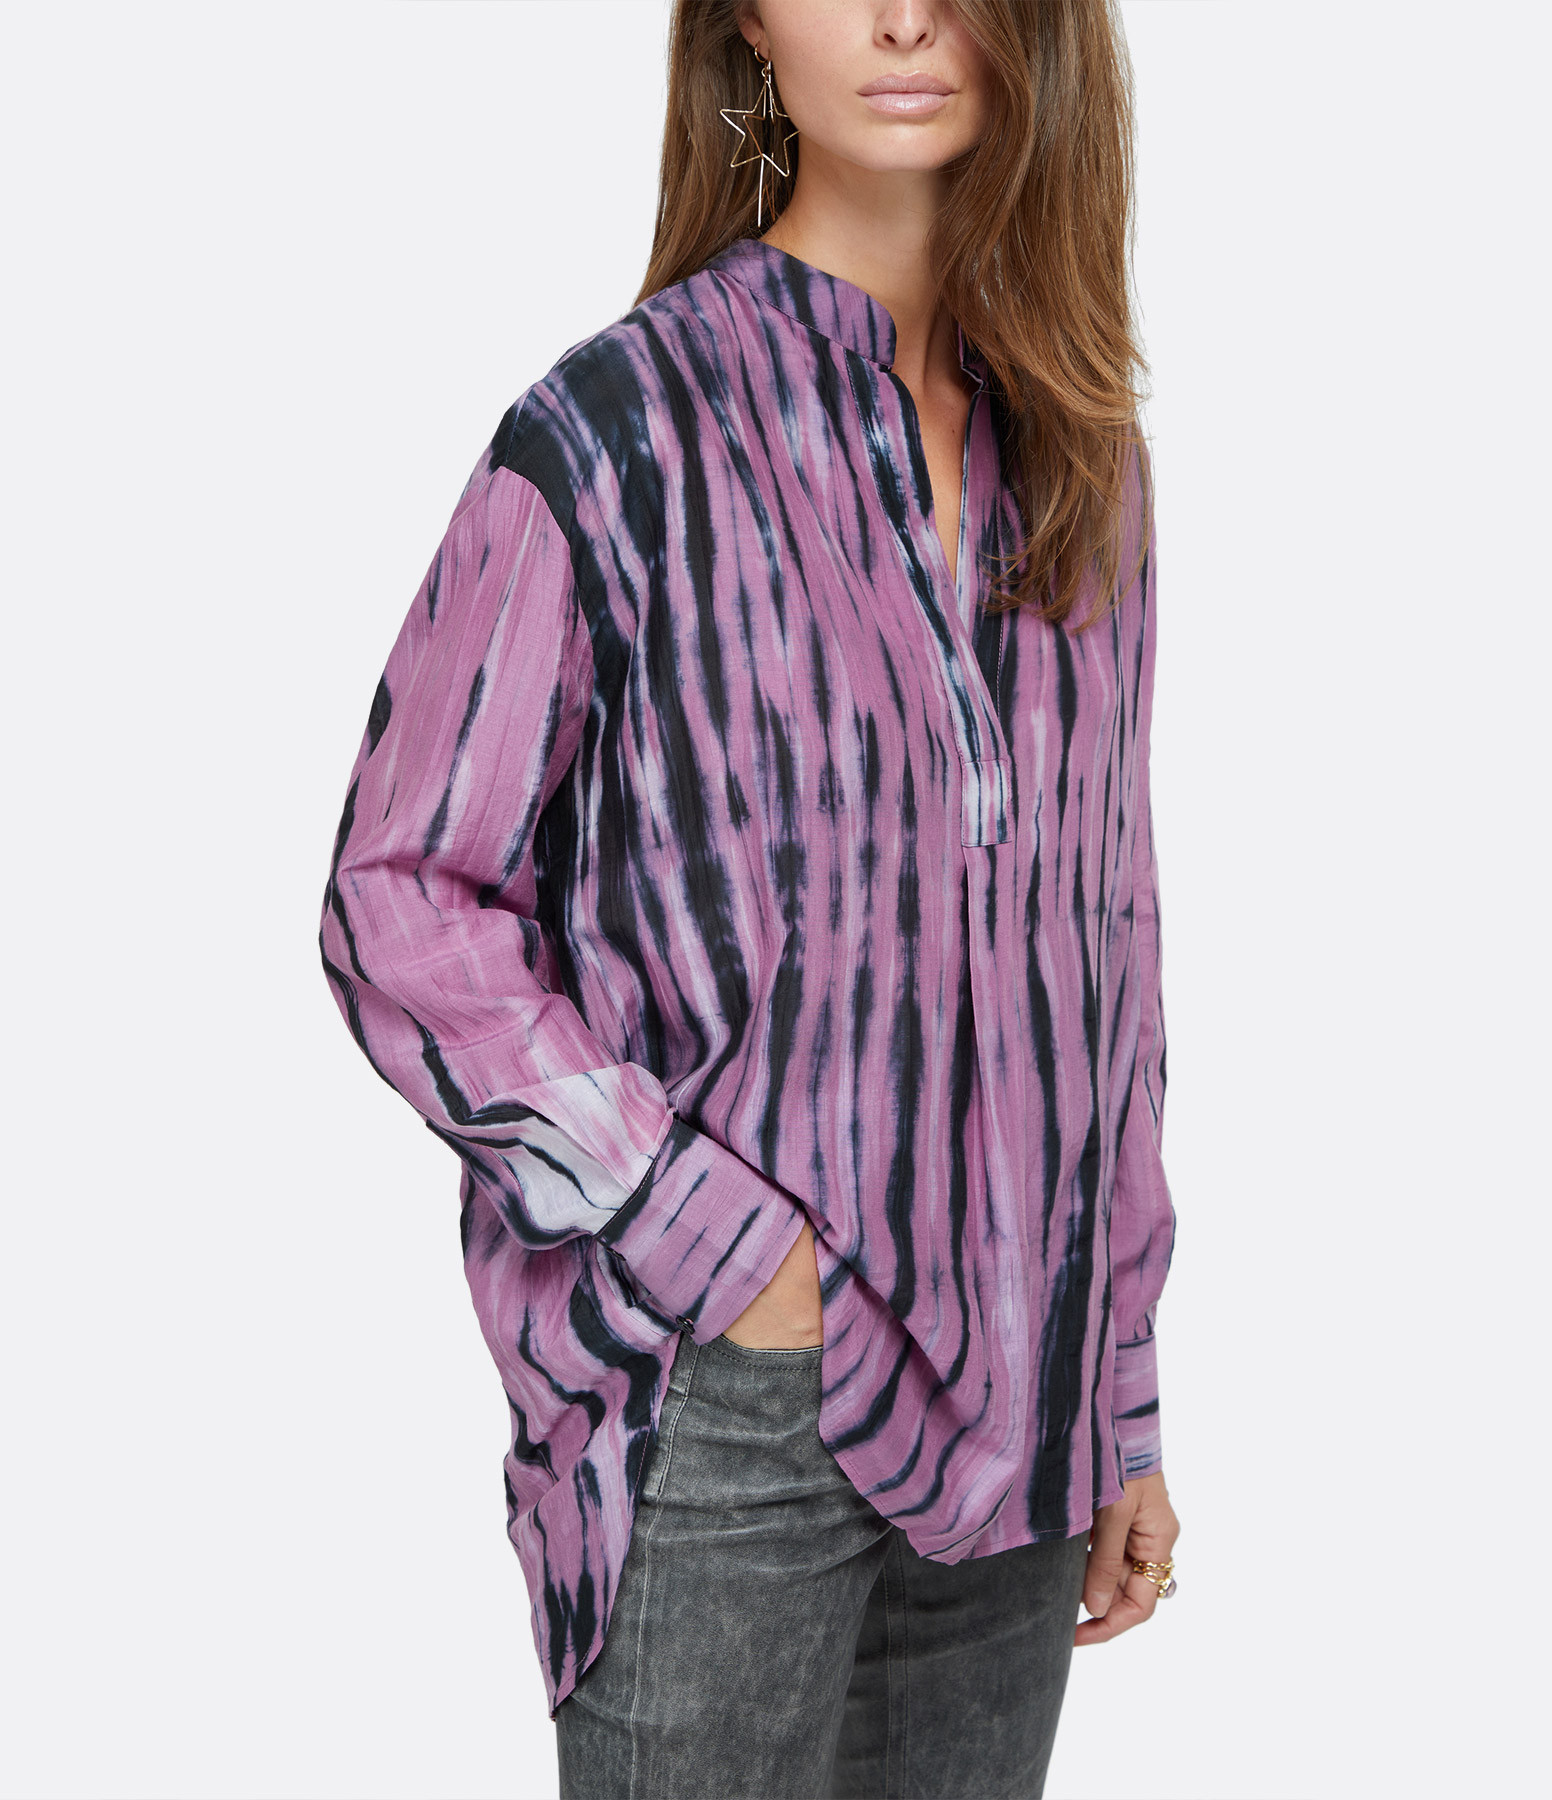 ROUGH STUDIOS - Blouse Sailor Coton Noir Violet